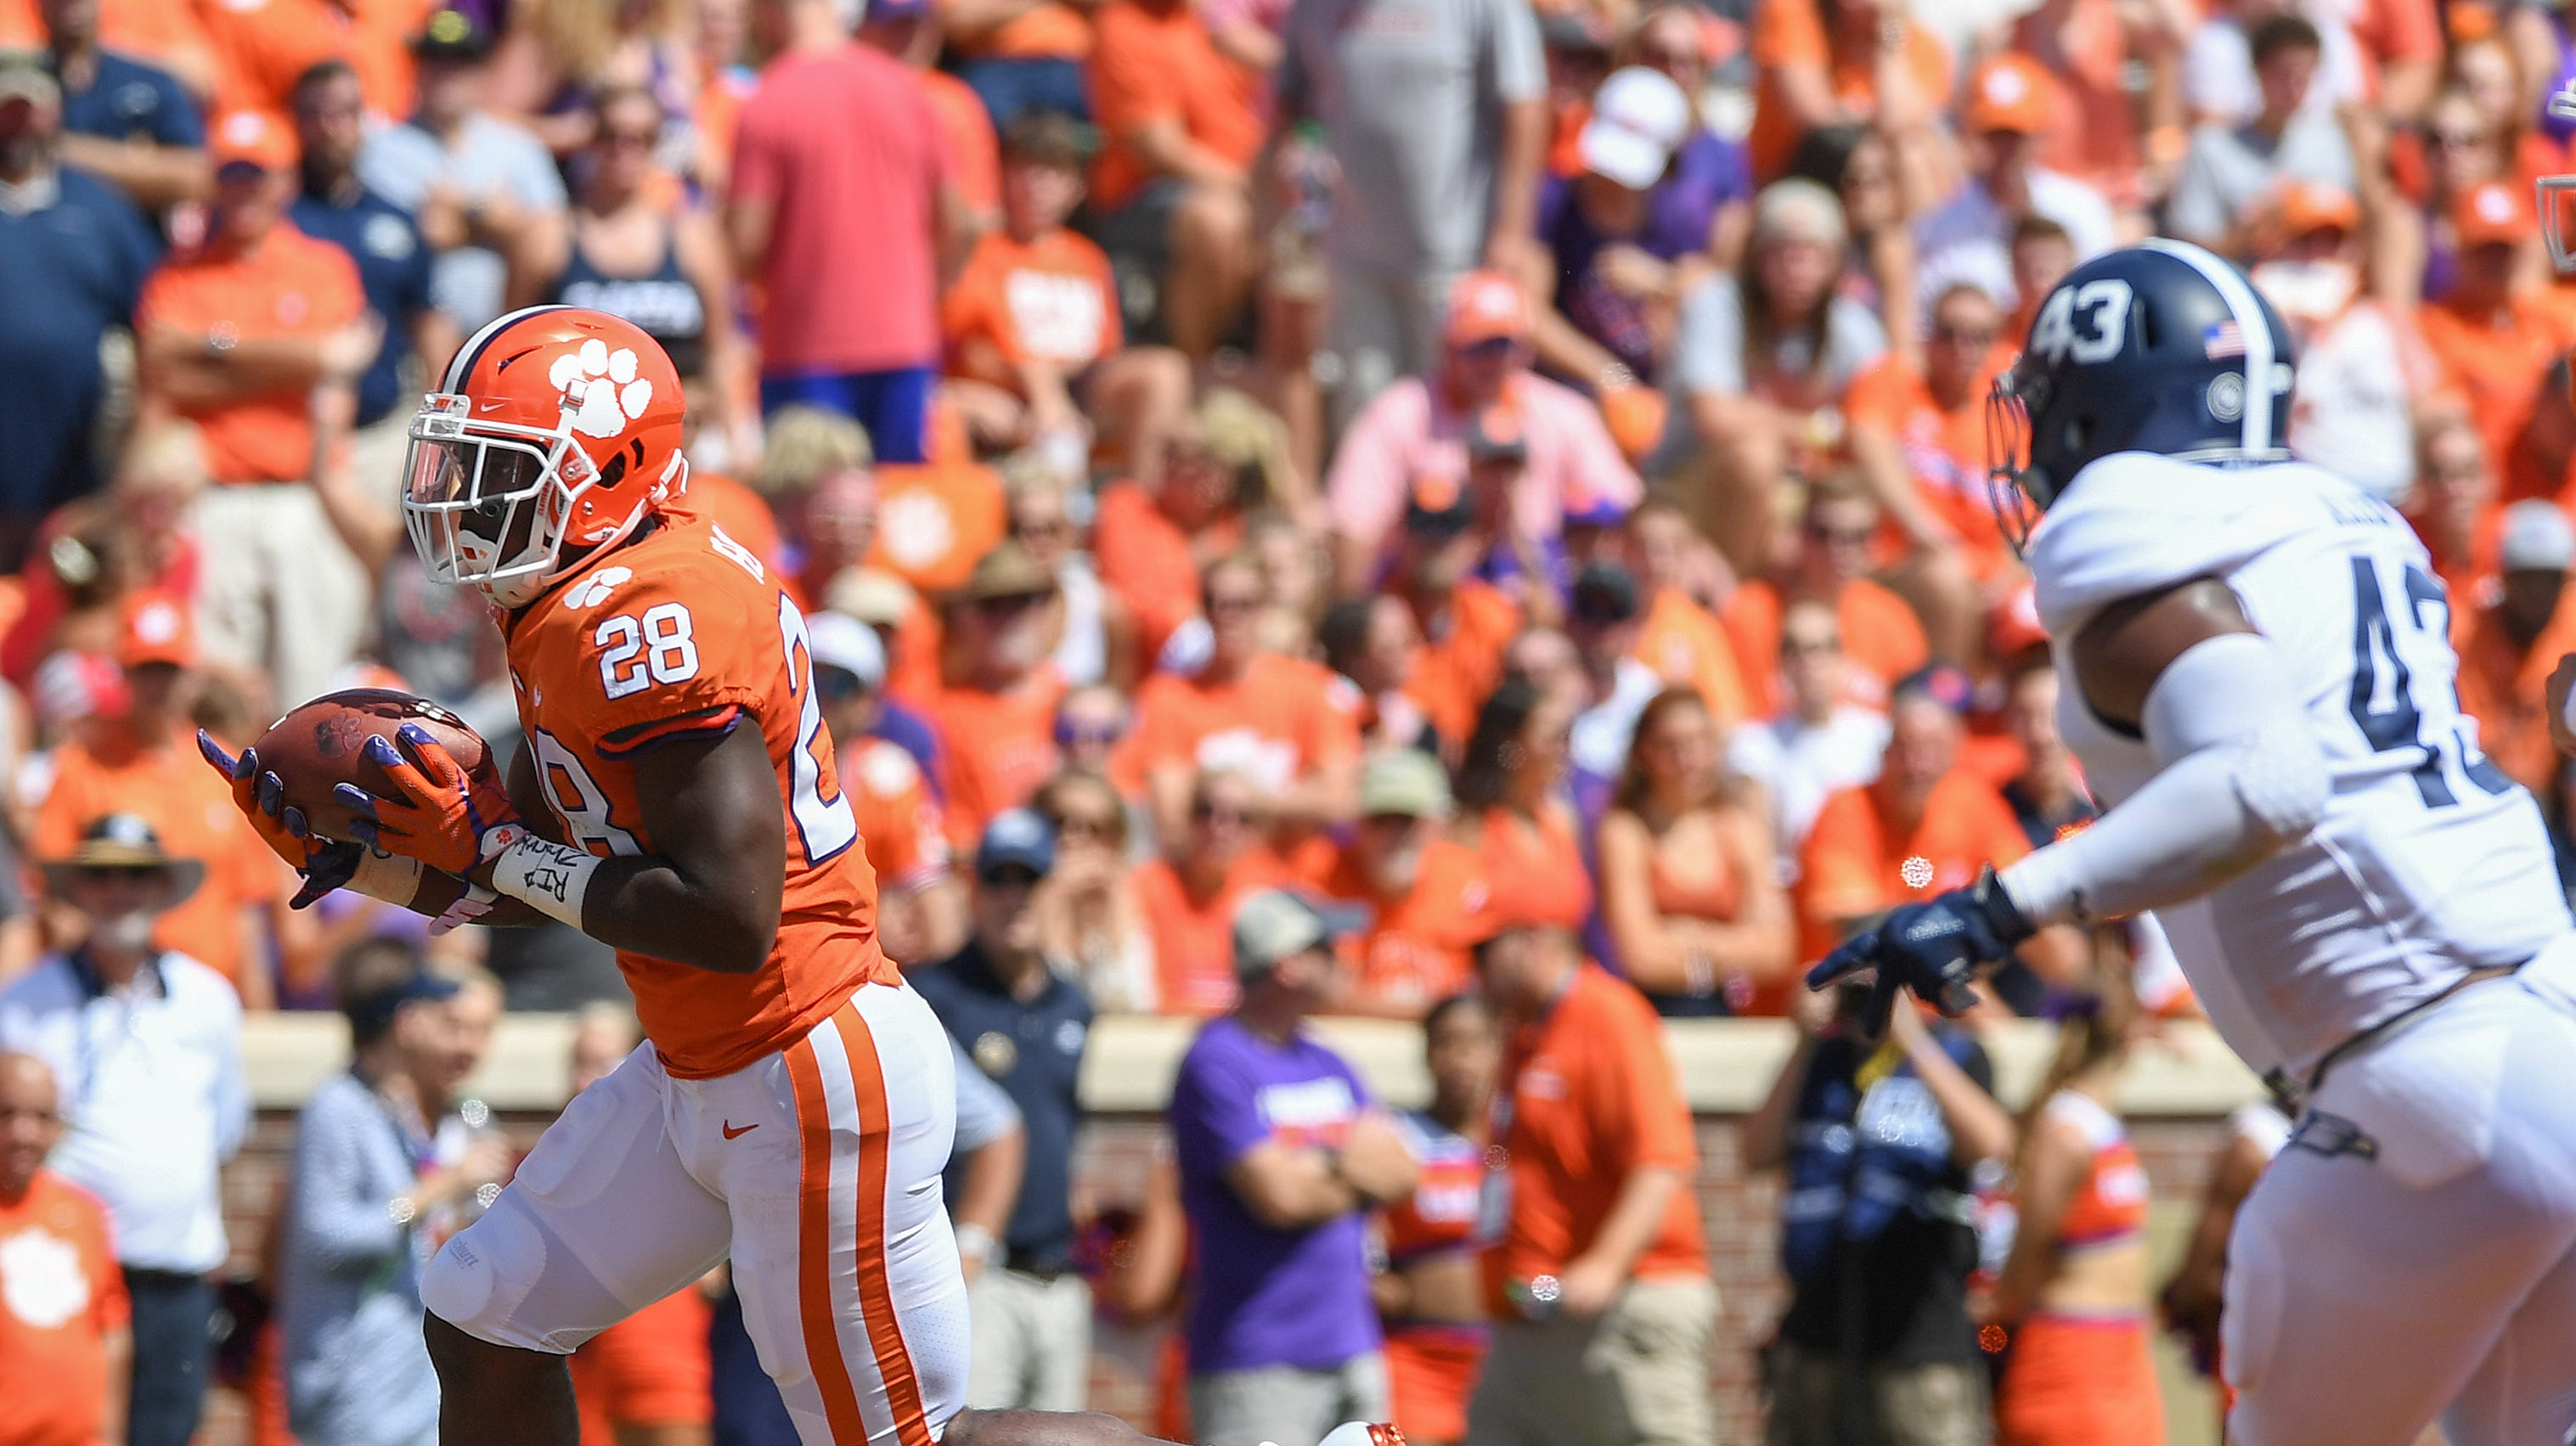 Clemson's Tavien Feaster leaves game early with injury, but returns with a bang